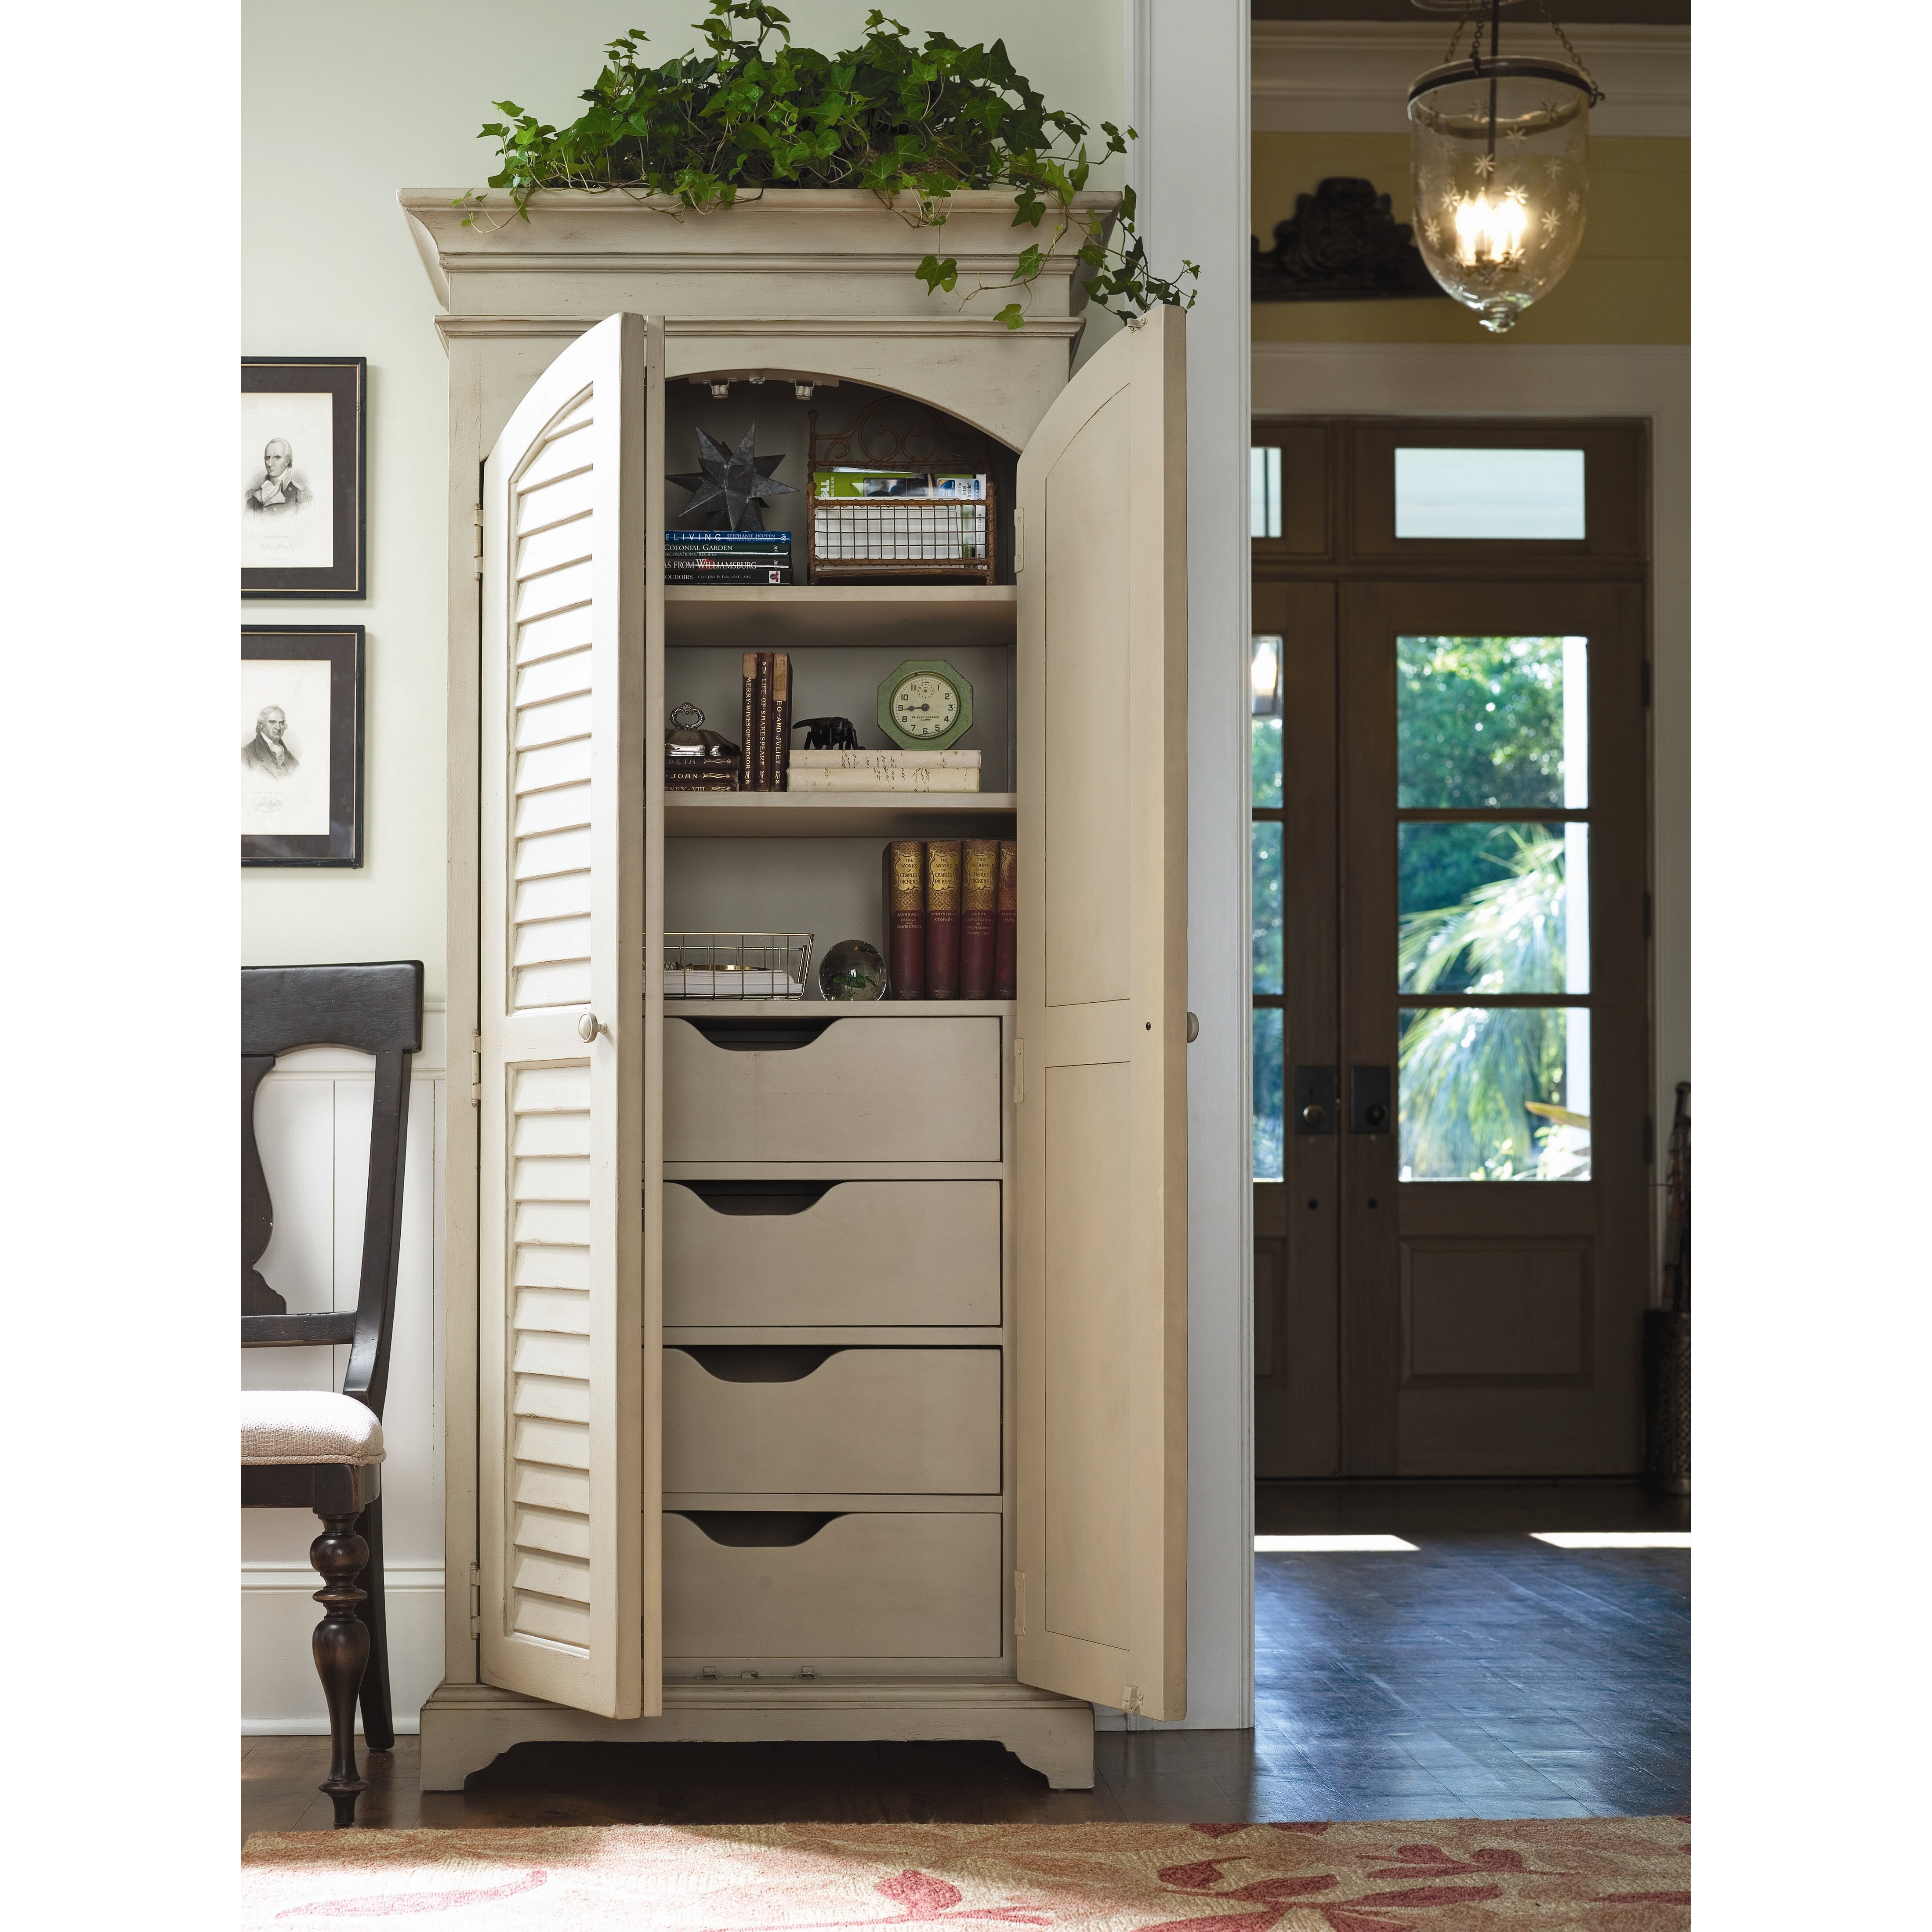 Home Depot Cabinets Review: Paula Deen Home Savannah Utility Storage Cabinet & Reviews